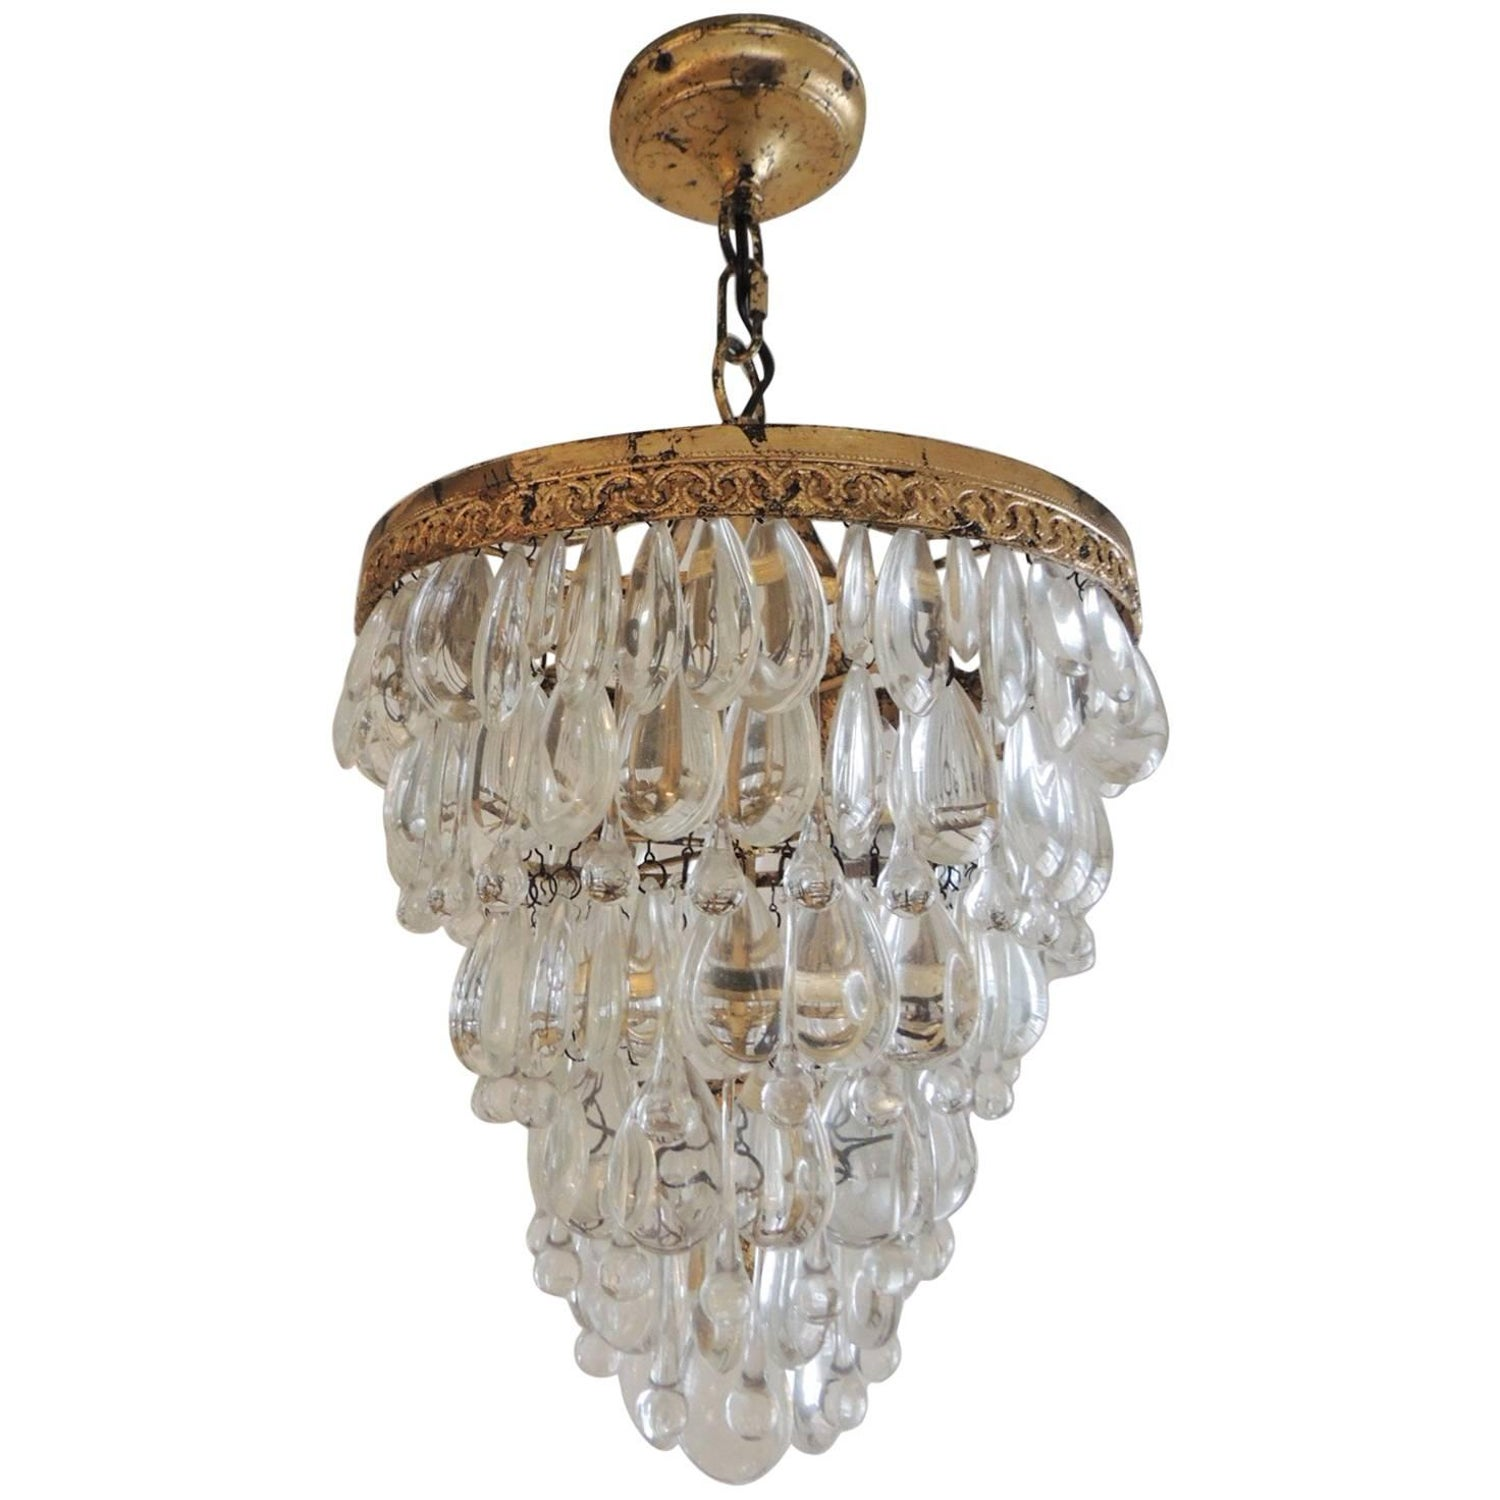 Vintage Deco Crystal Chandelier with Gold Leaf Accents 1940s at